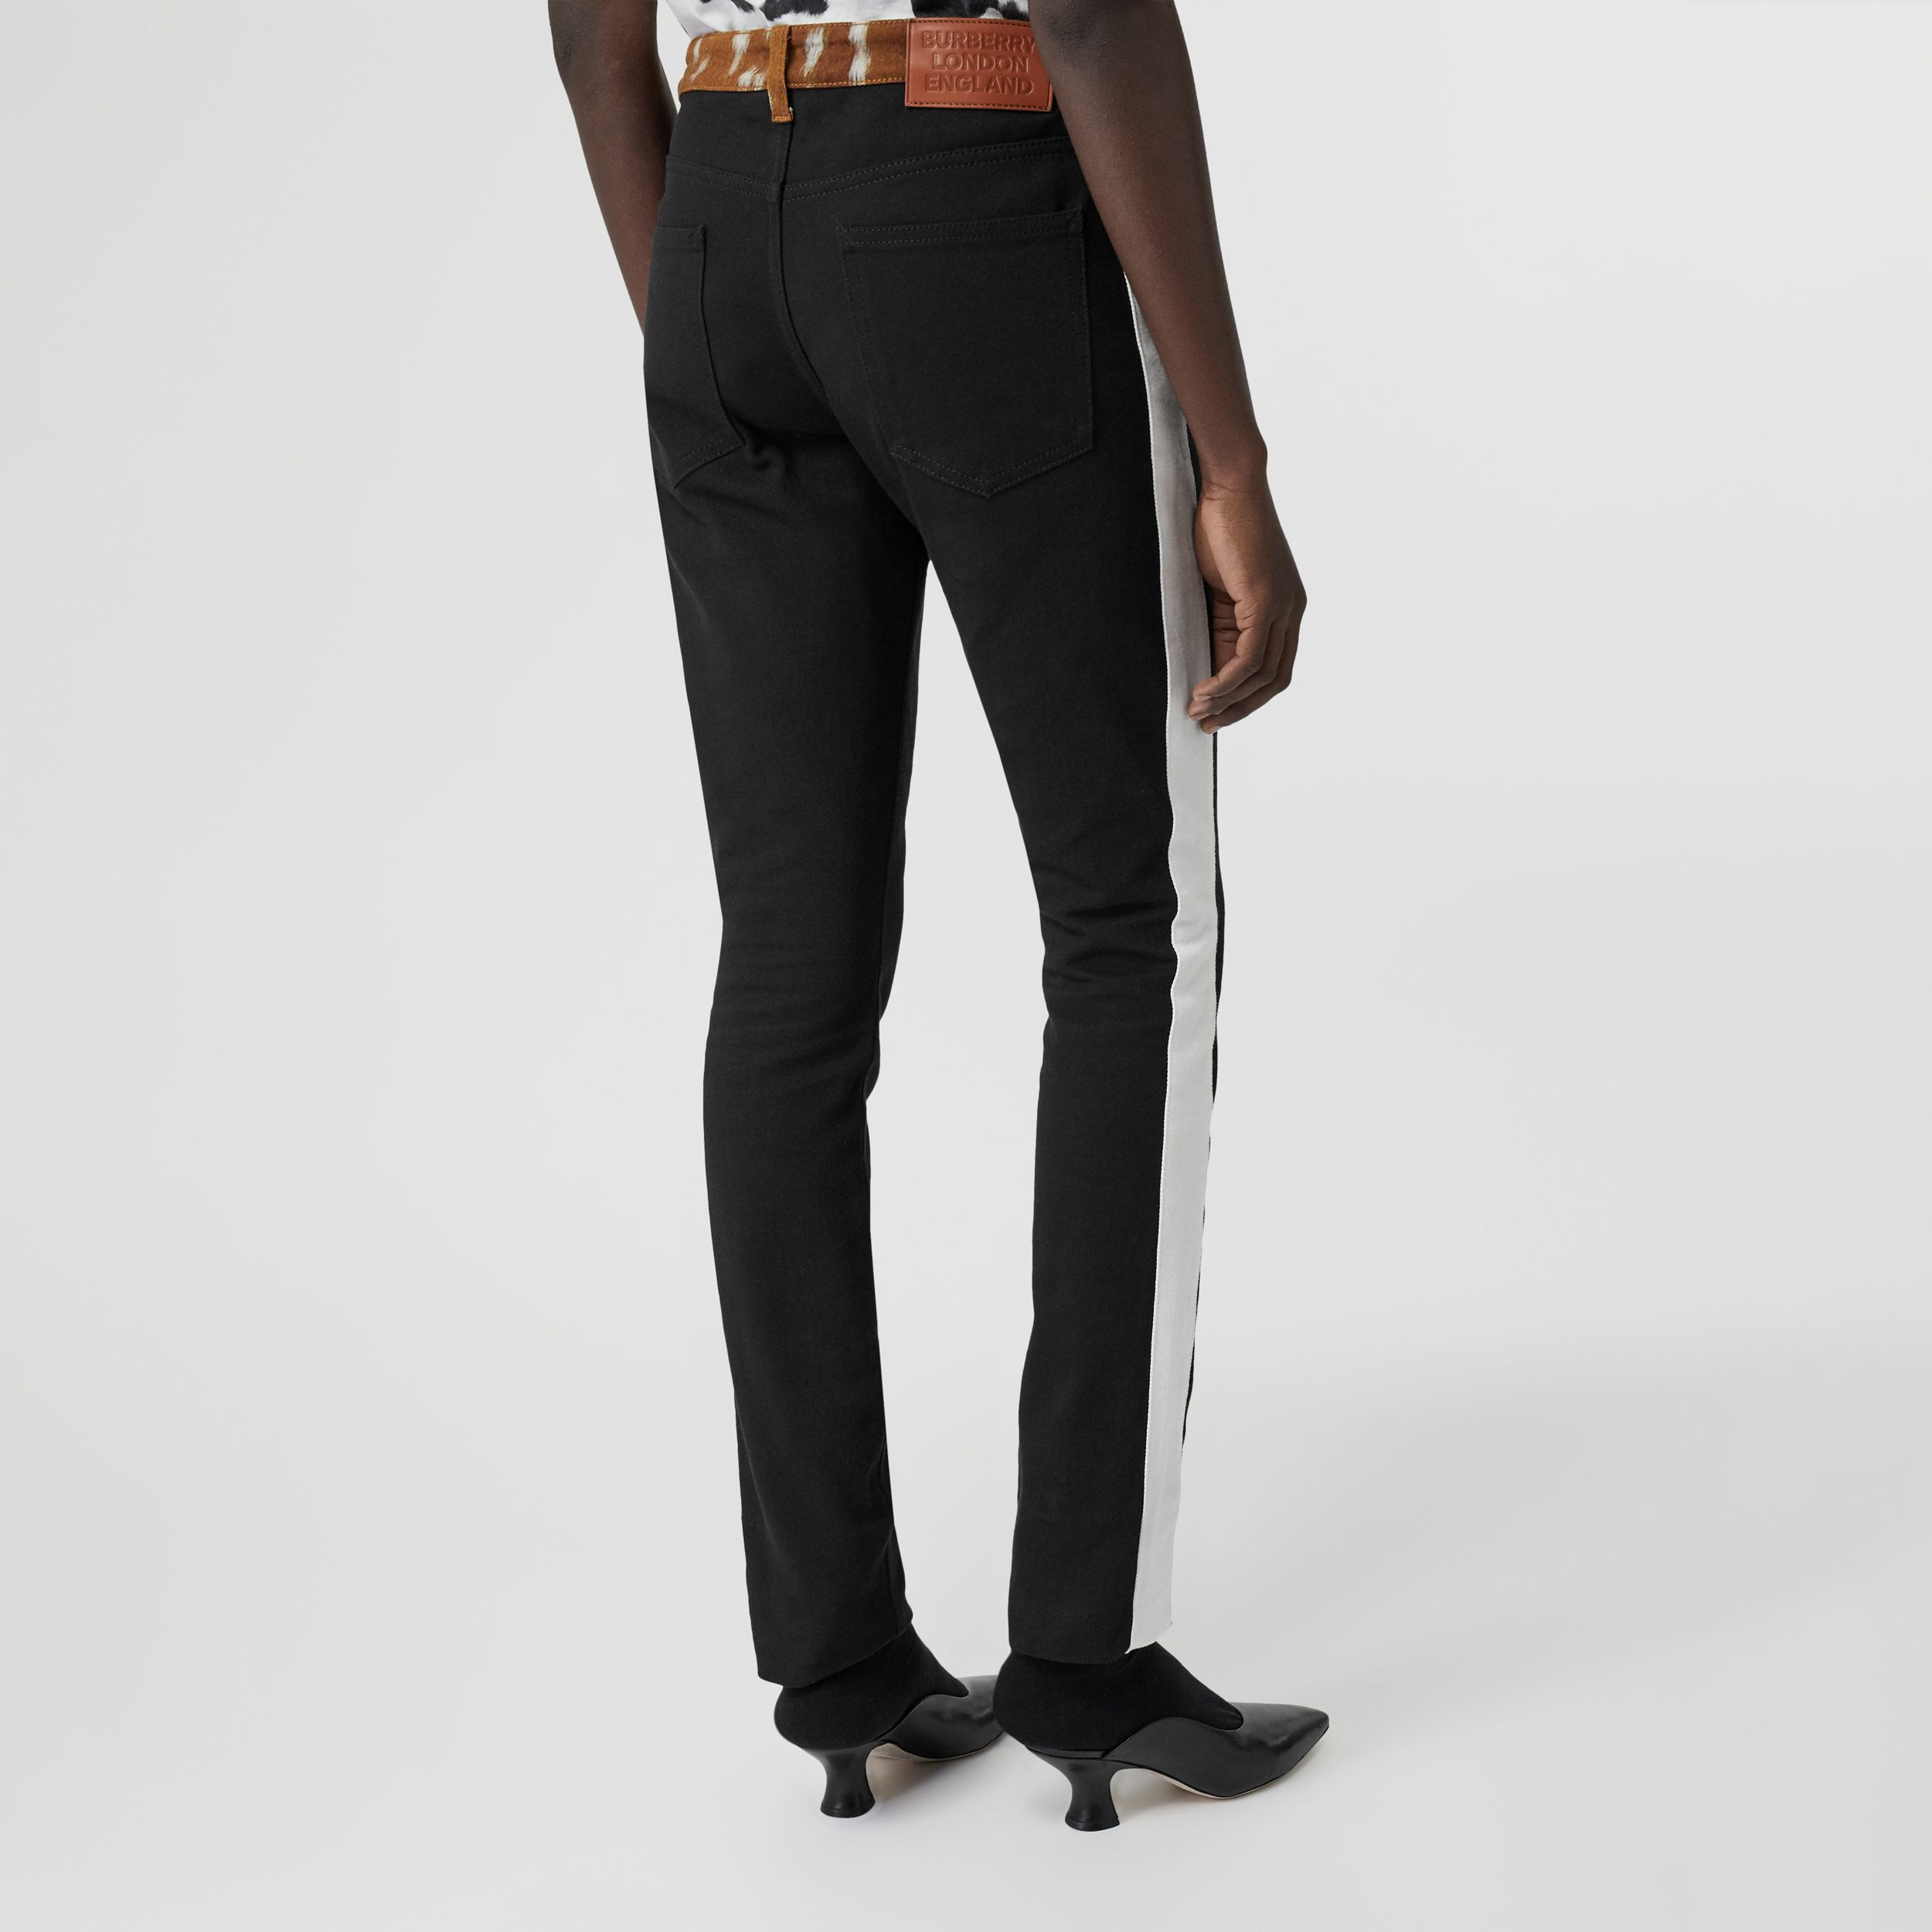 Straight Fit Deer Print Trim Japanese Denim Jeans in Black - Women | Burberry - 3